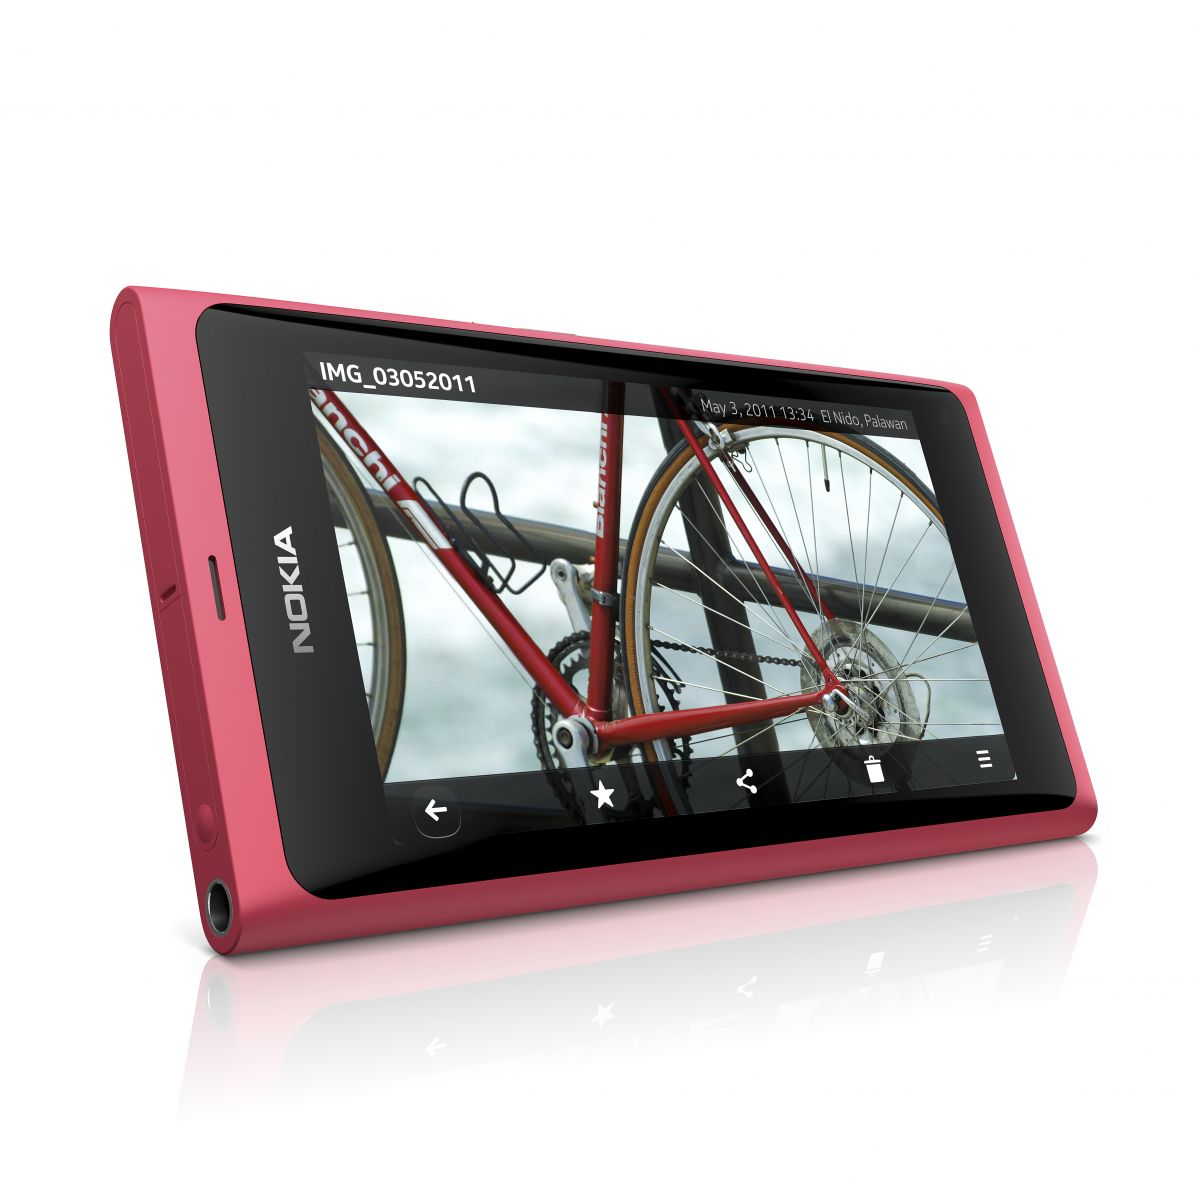 Future Disruption in the Mobile Ecosystem – Nokia's N9 – Videos